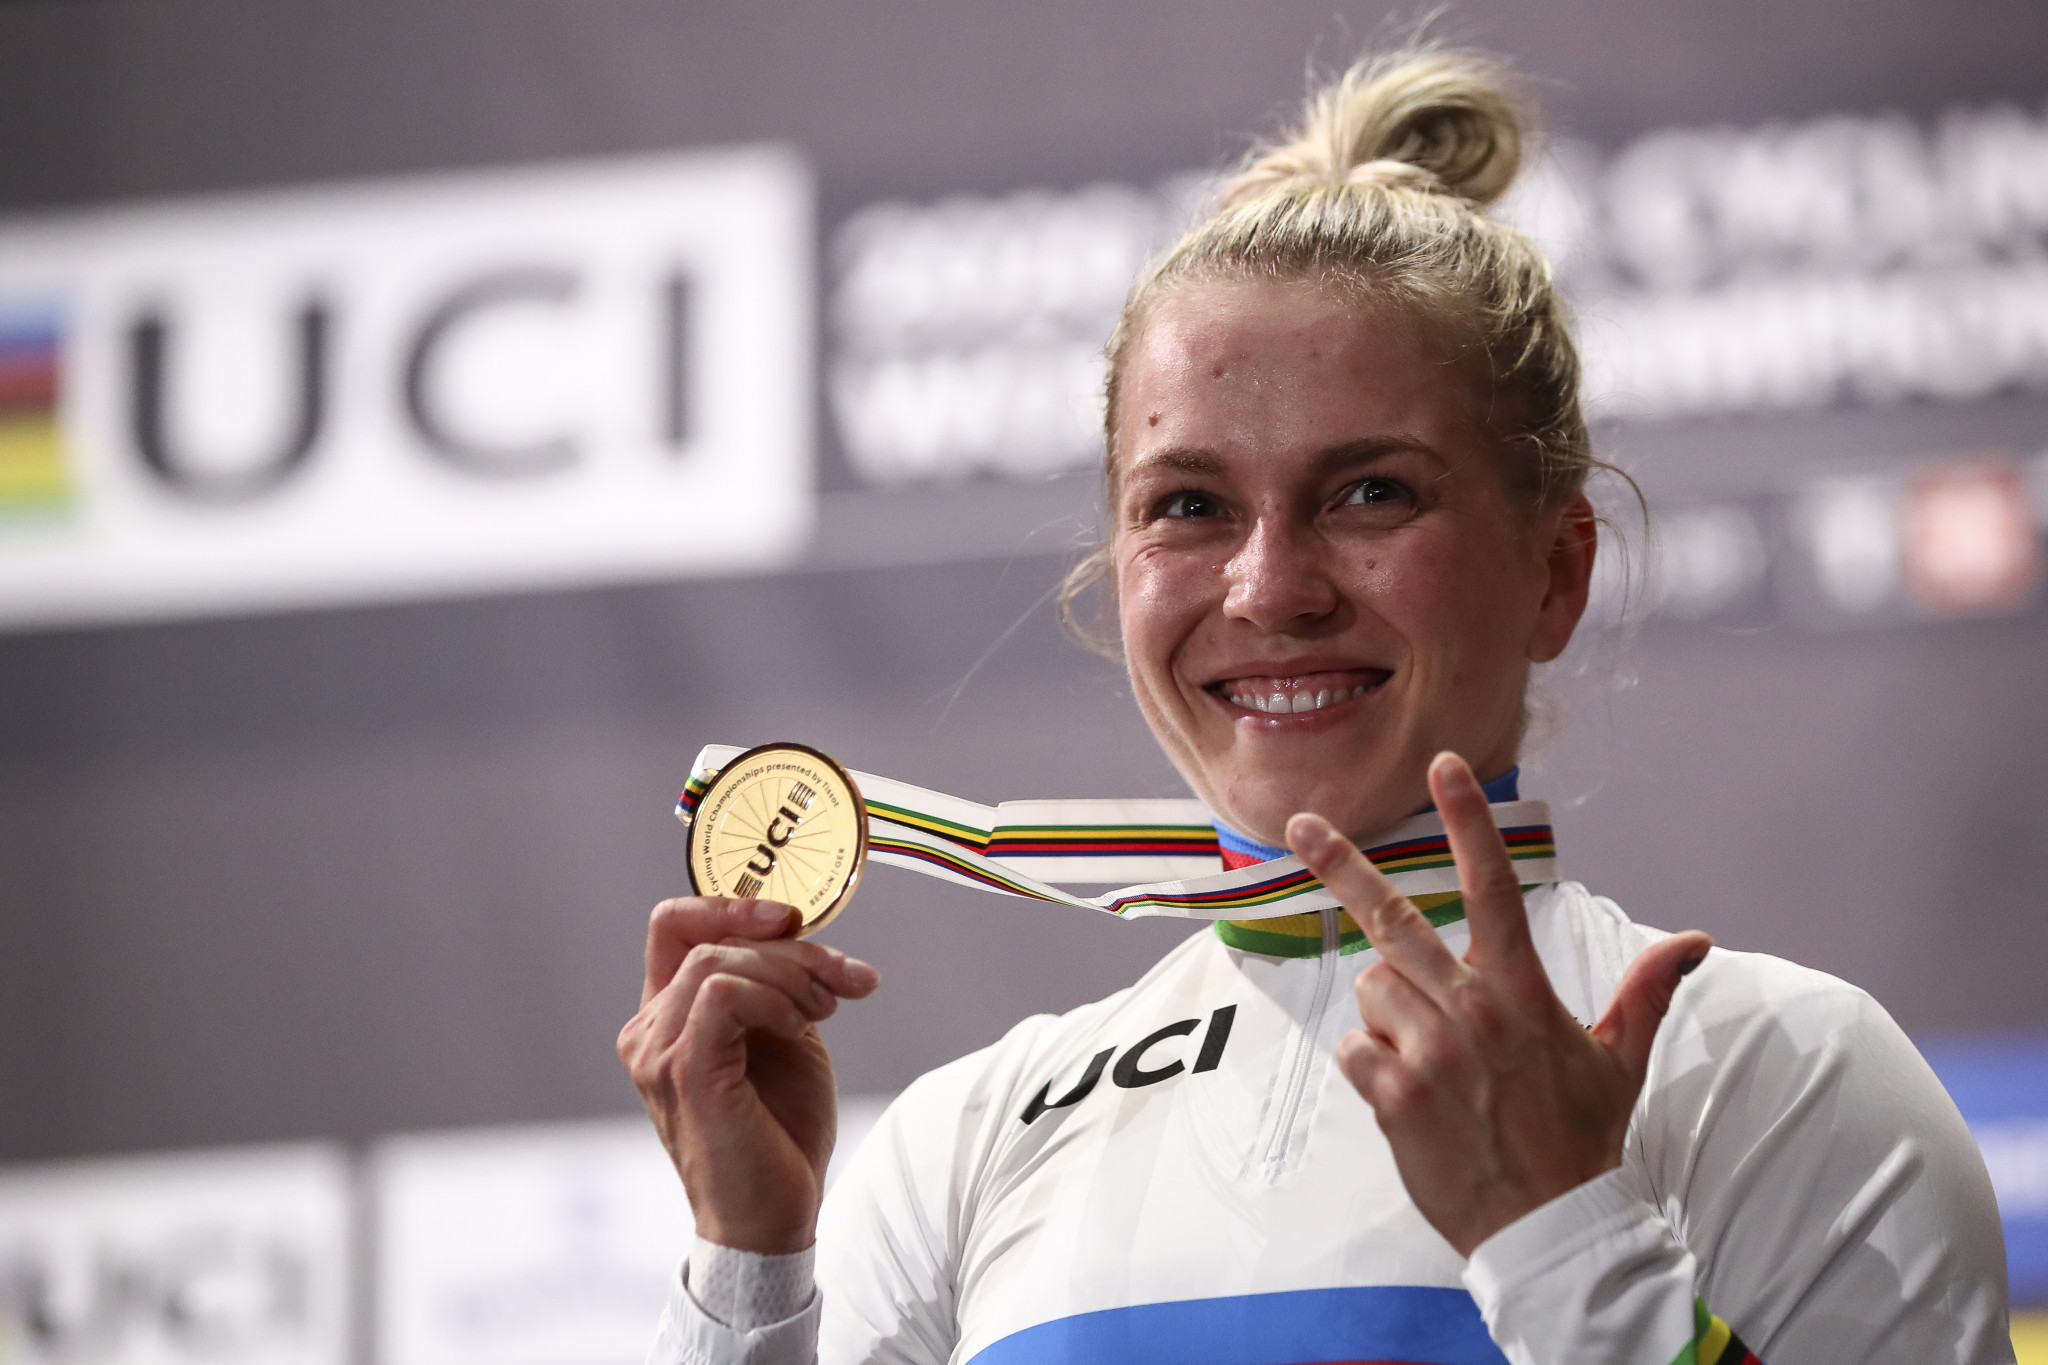 Hinze earns third gold medal as World Track Cycling Championships conclude